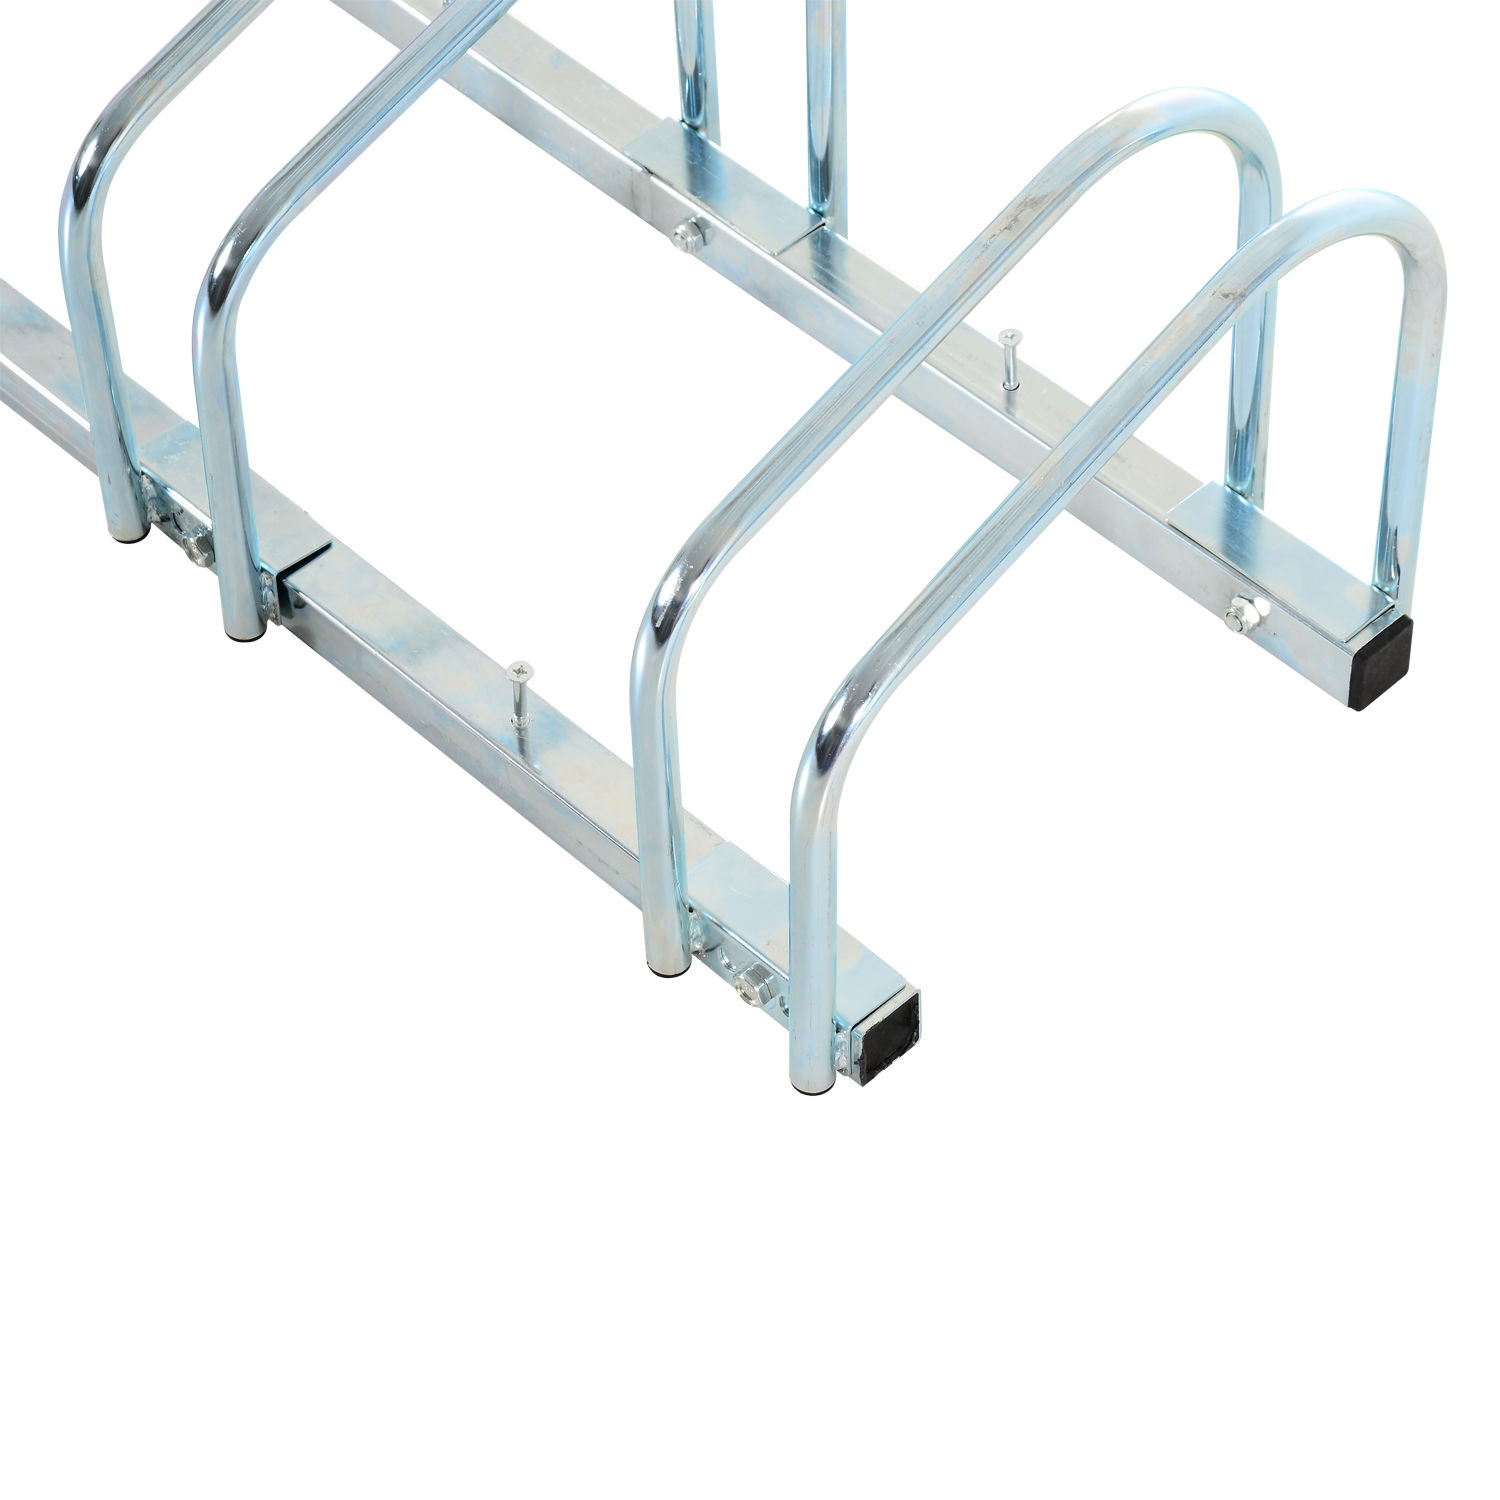 Soporte Bici Suelo Bicycle Bike Parking Cycle Floor Rack Stand Storage Mount